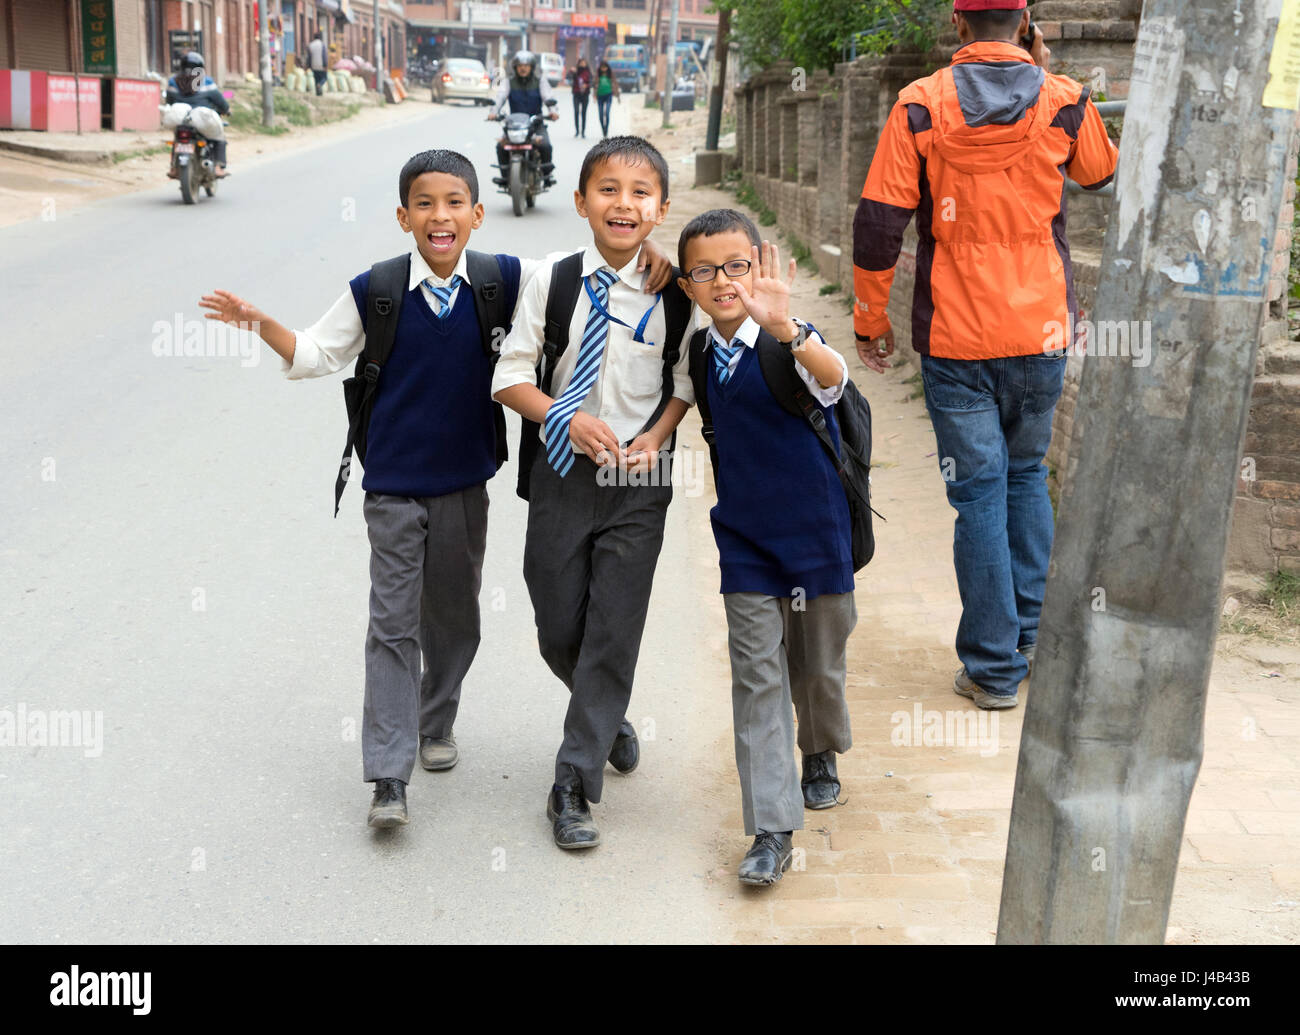 smiling-nepalese-schoolboys-in-uniforms-walking-on-the-street-bhaktapur-J4B43B.jpg